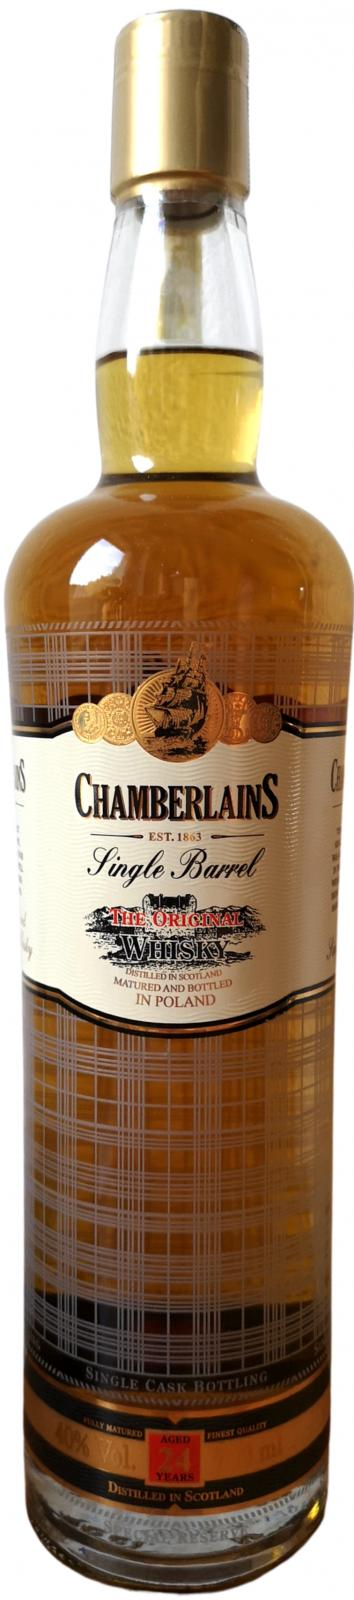 Chamberlains 24-year-old